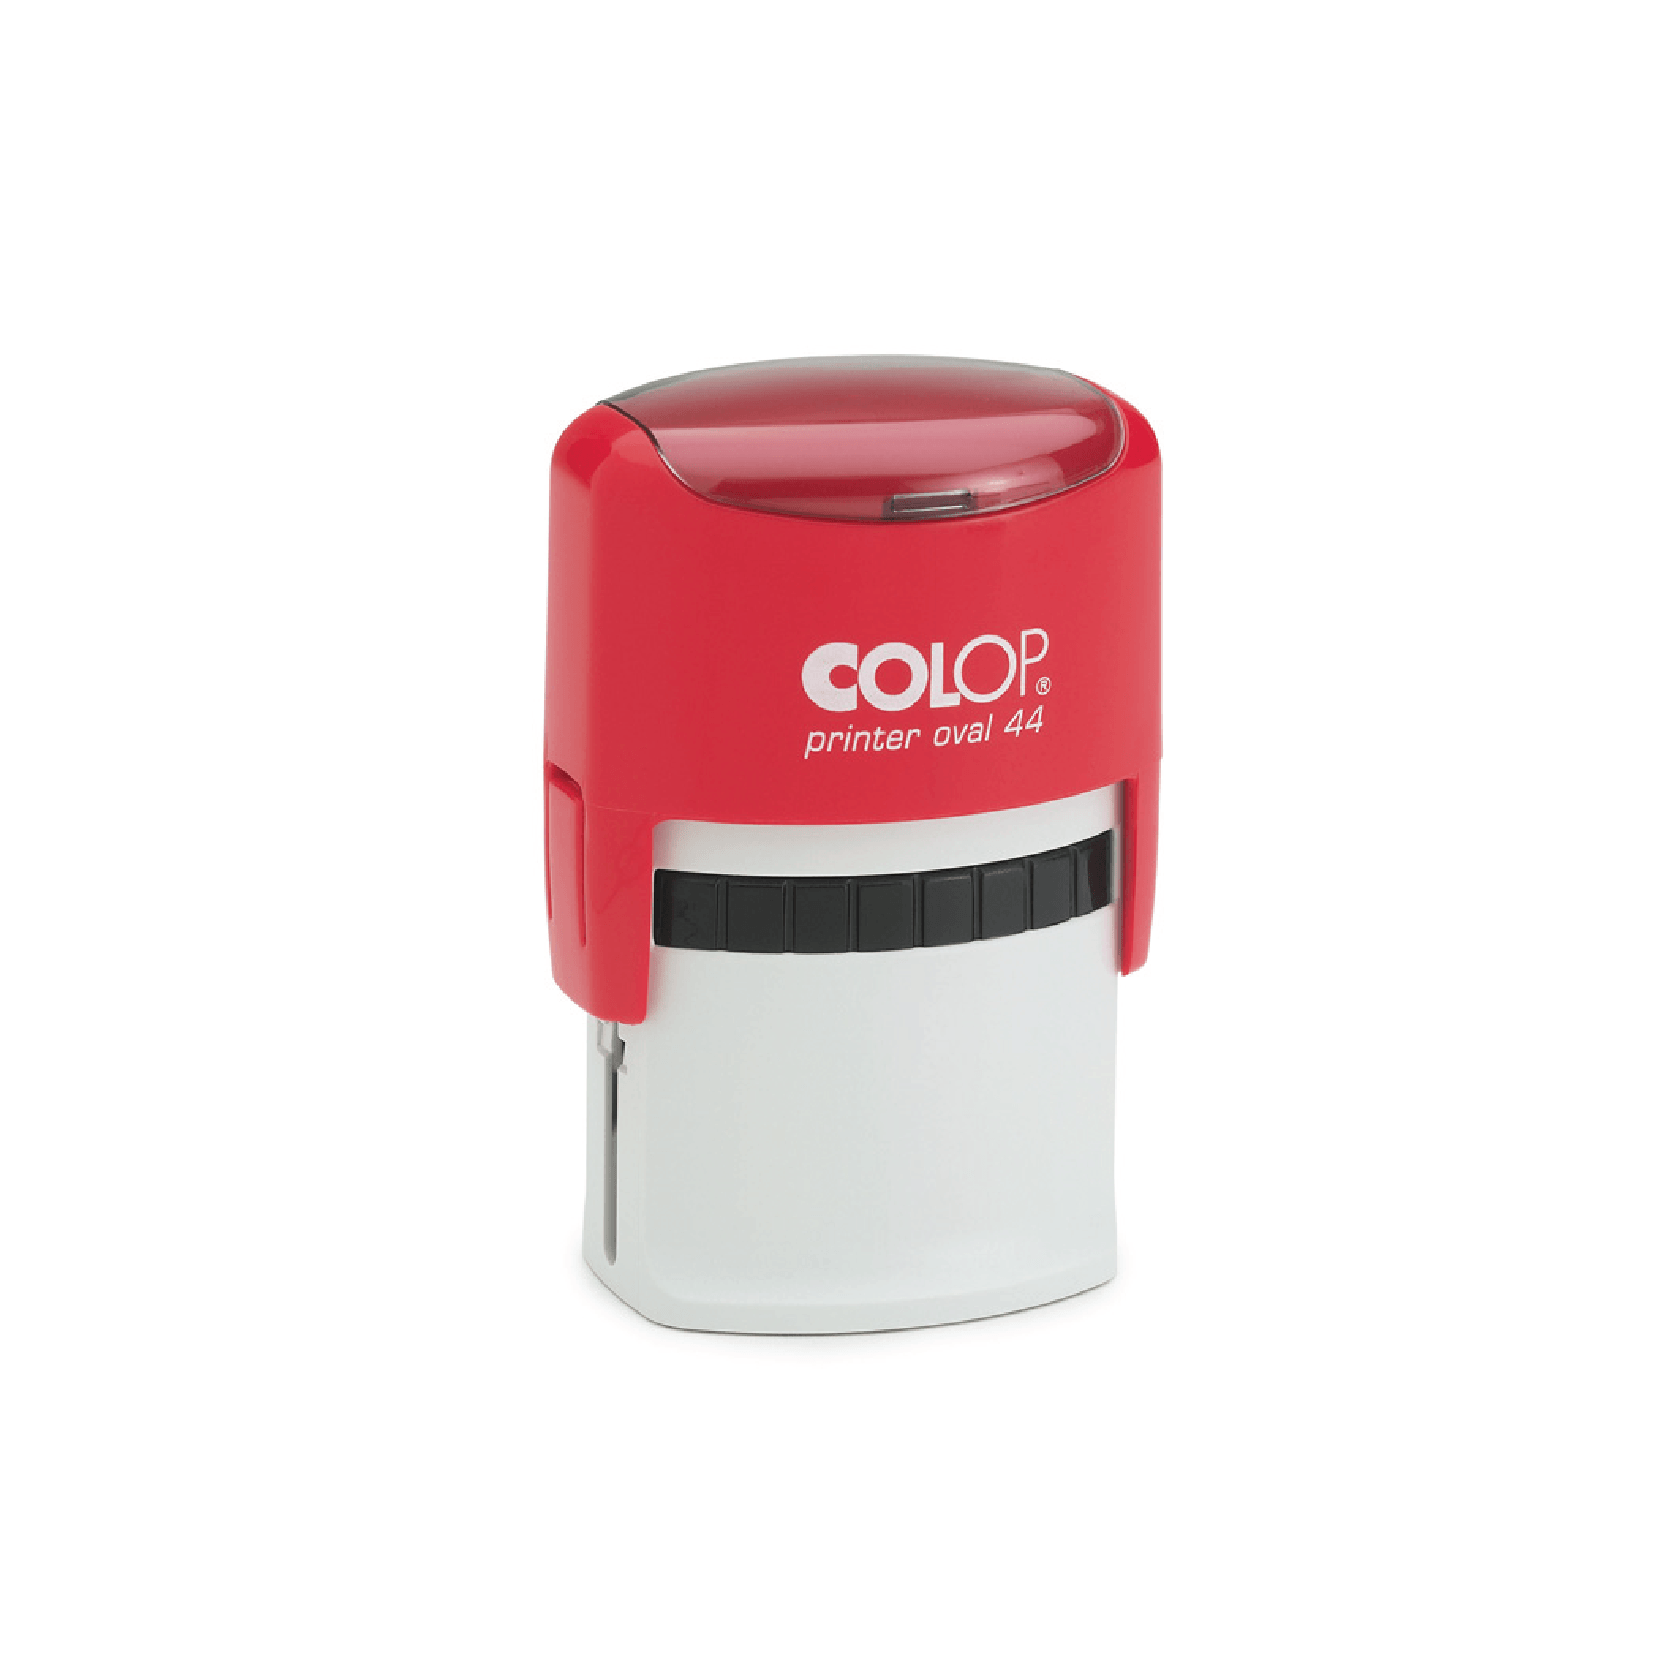 COLOP Printer Oval OV44 Red